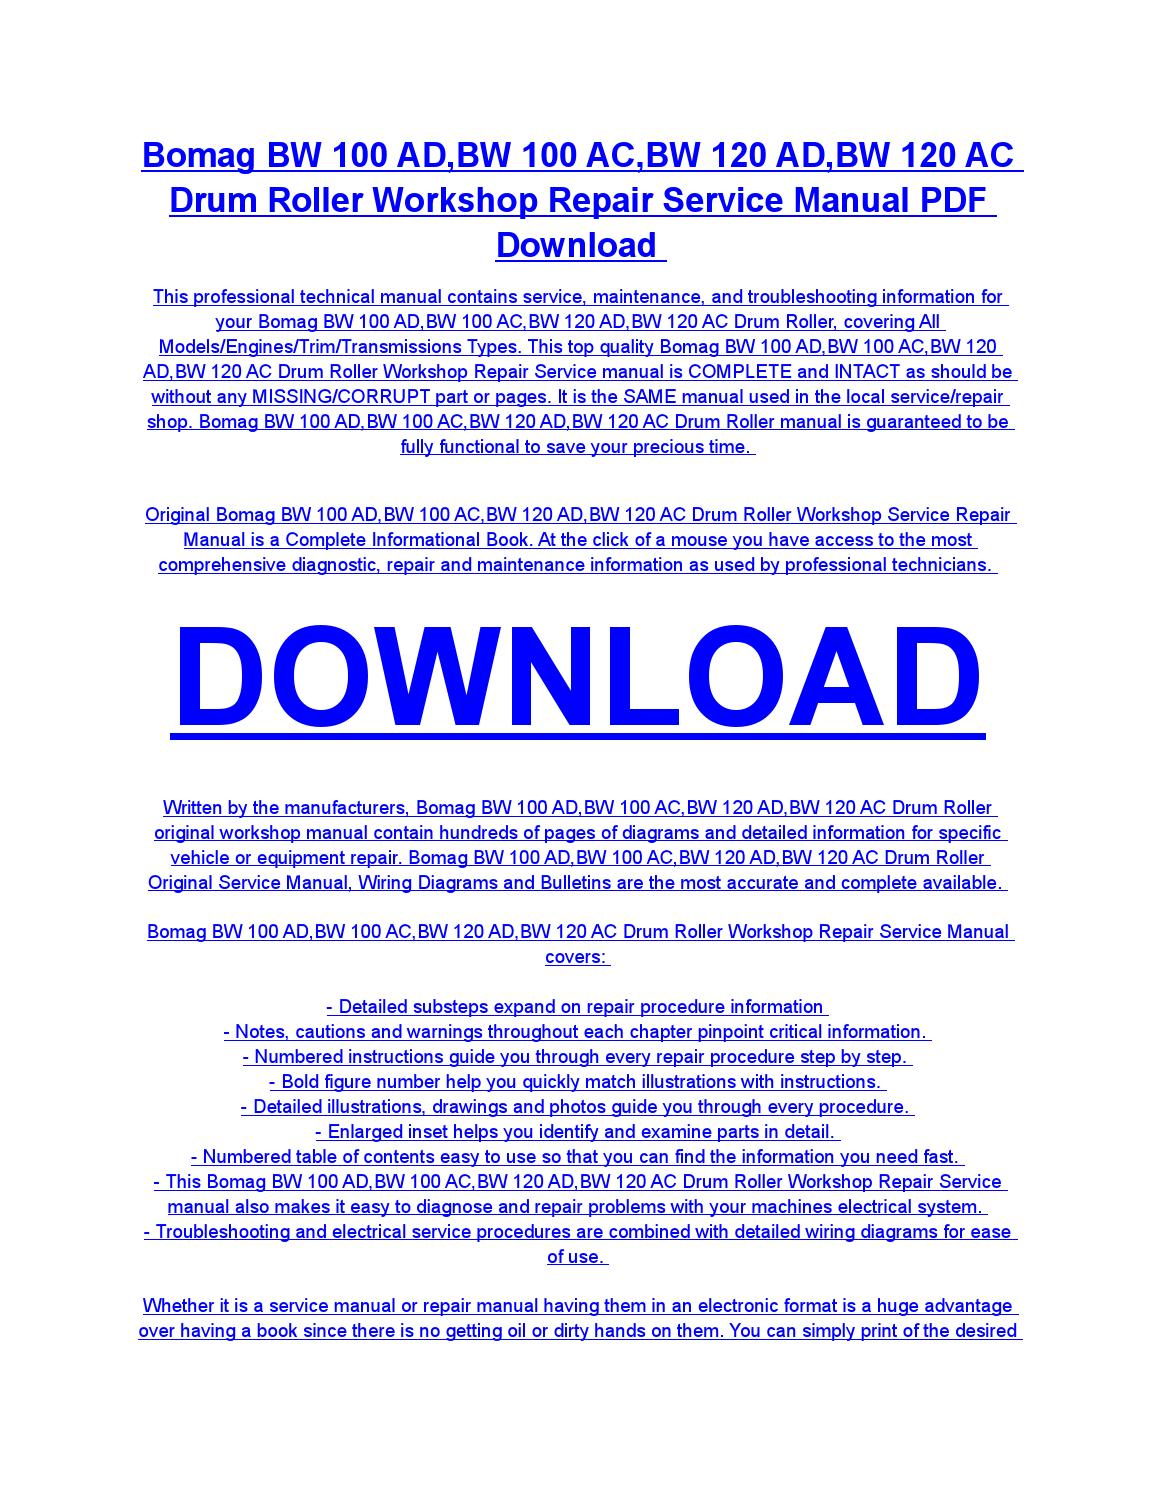 bomag bw 100 ad,bw 100 ac,bw 120 ad,bw 120 ac drum roller service repair  workshop manual download